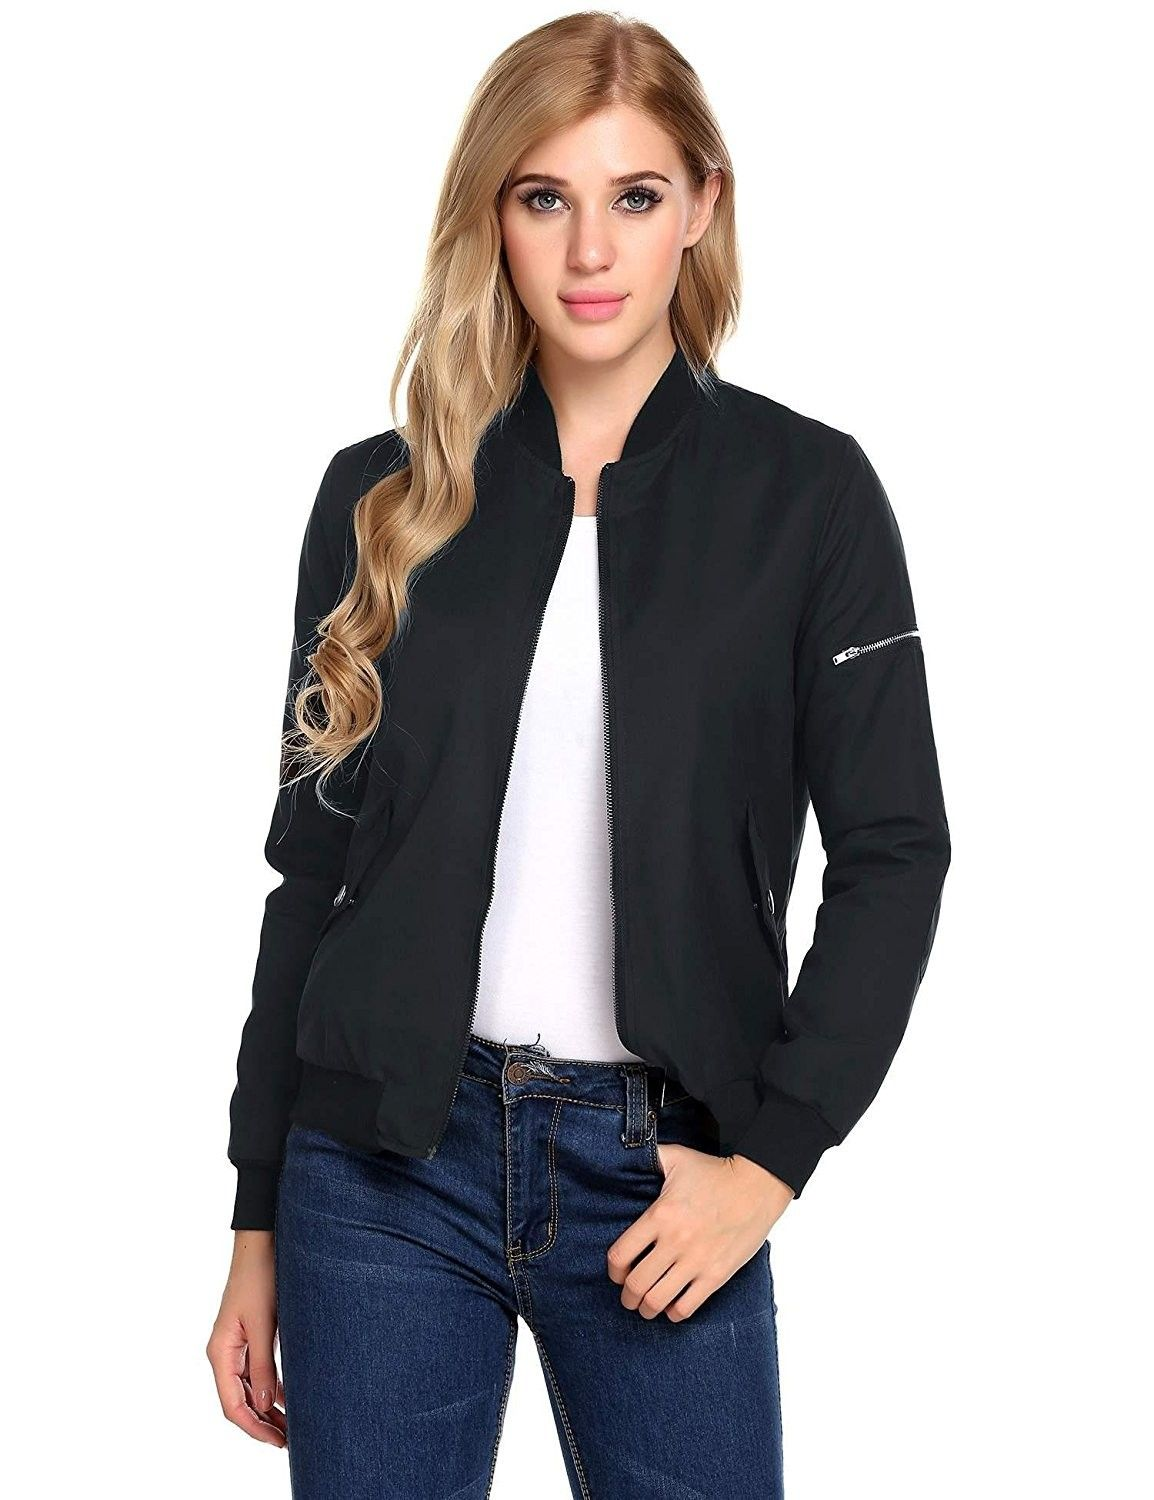 86901f22b Women Classic Lightweight Solid Jacket Zip Up Bomber Jacket Coat ...